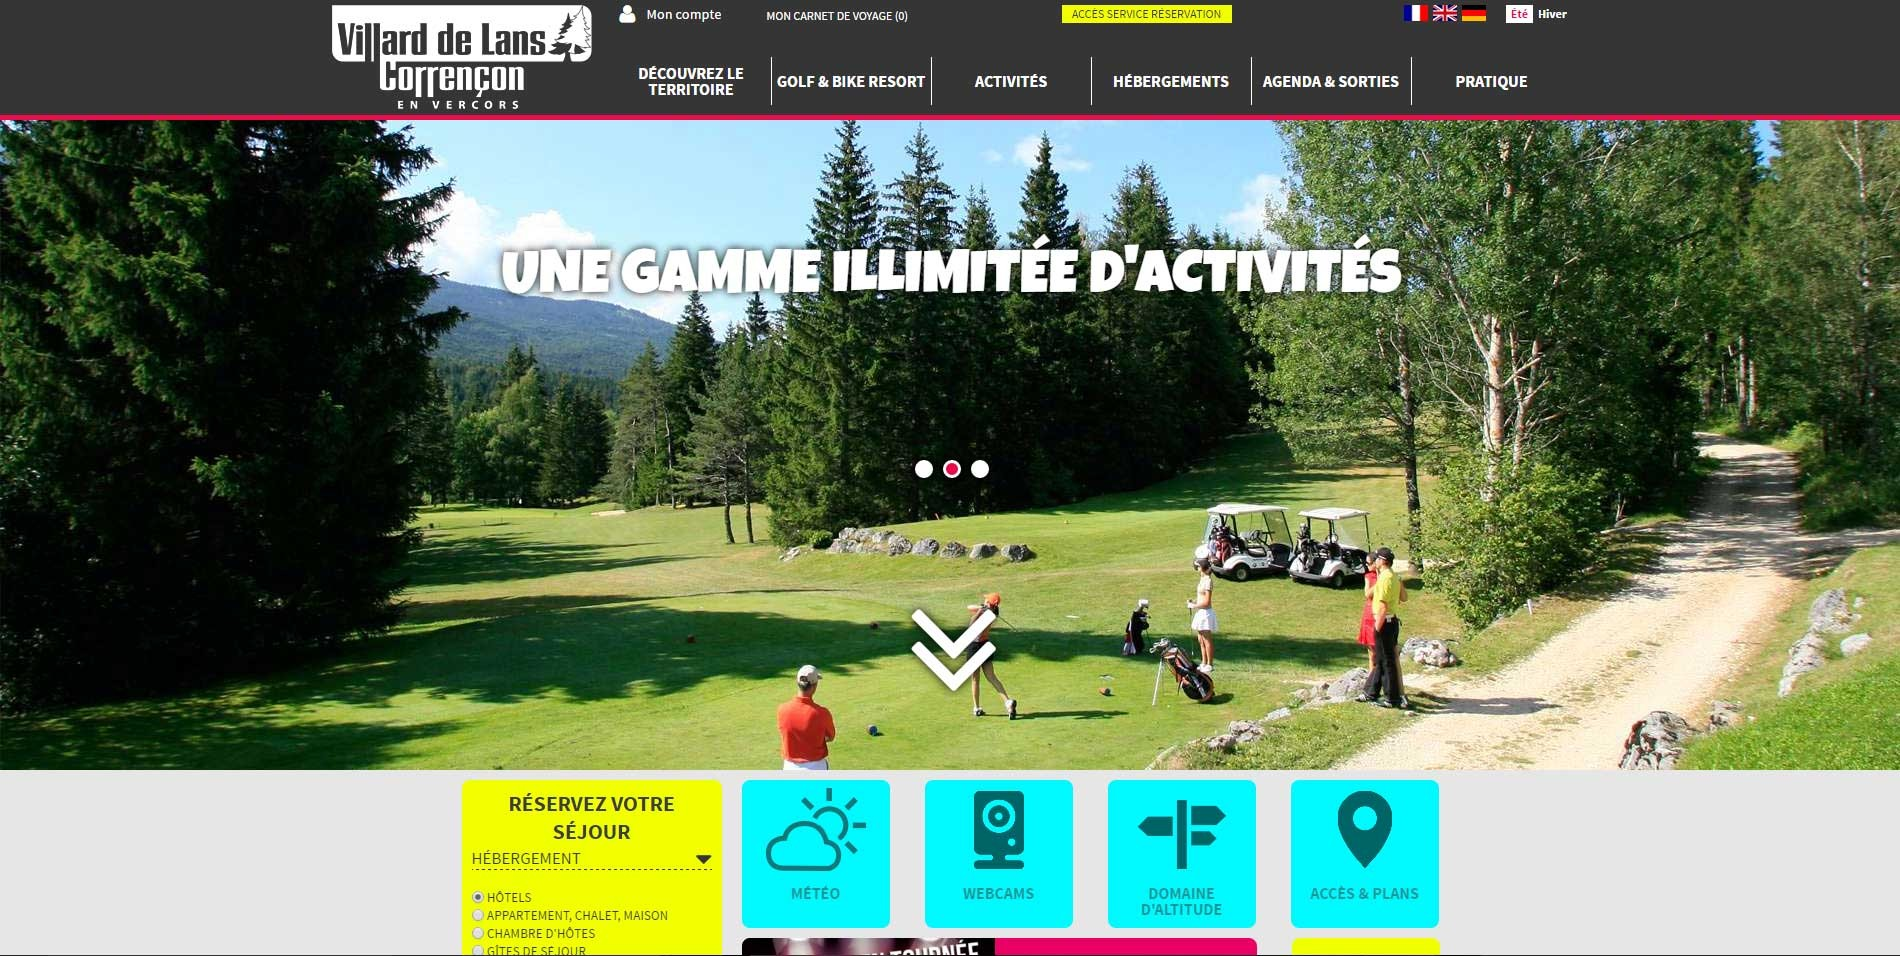 Base clients contacts base de donn es tourisme - Office de tourisme de villard de lans ...